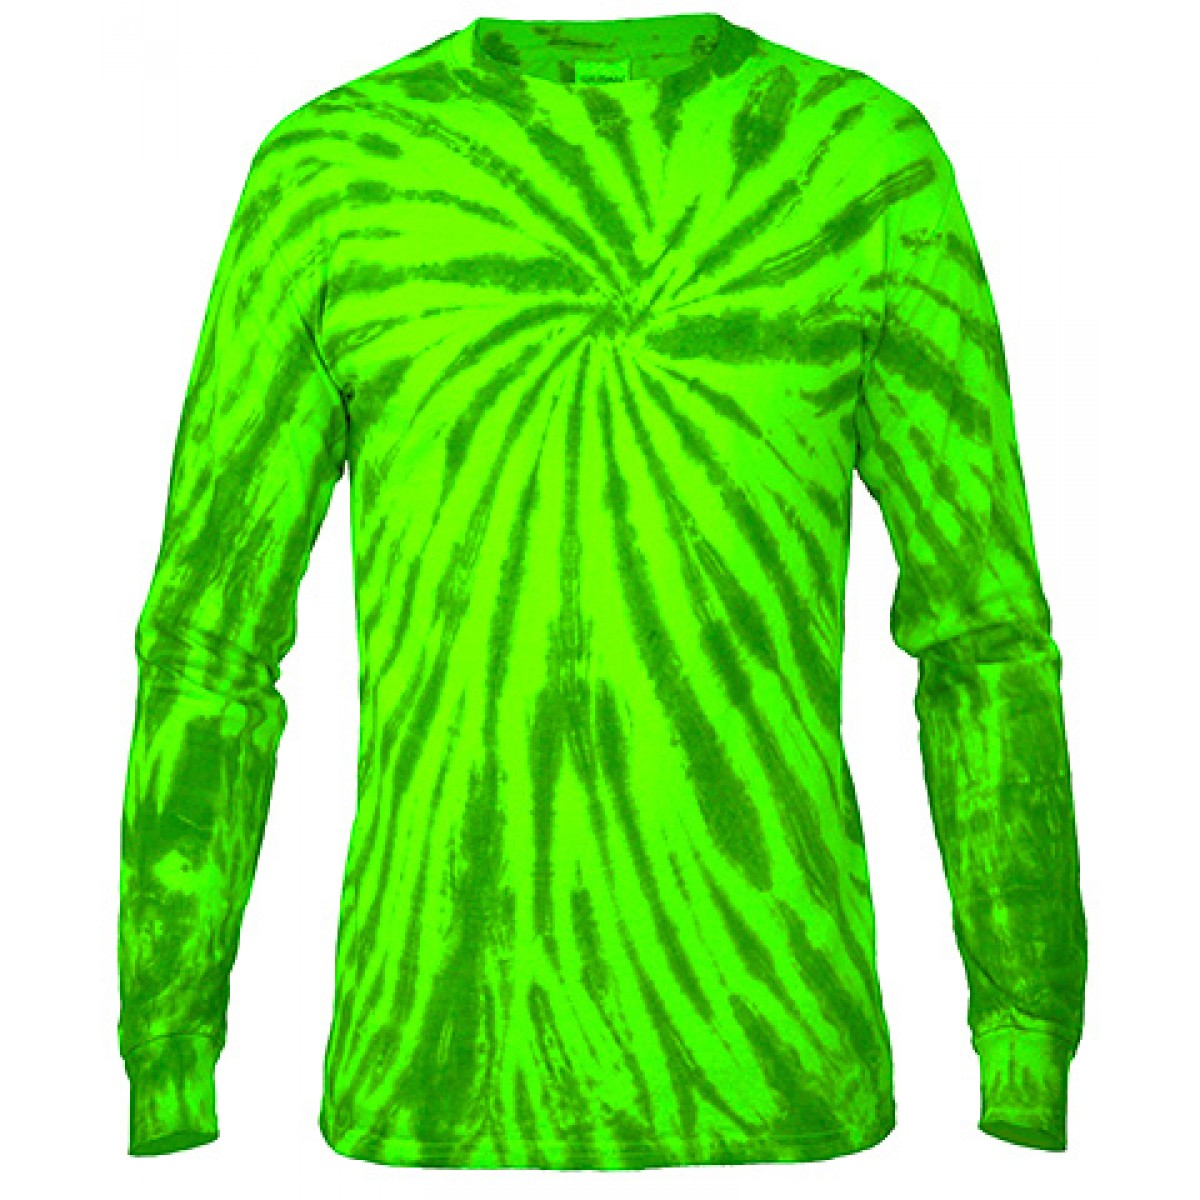 Multi Color Tie-Dye Long Sleeve Shirt -Green-L